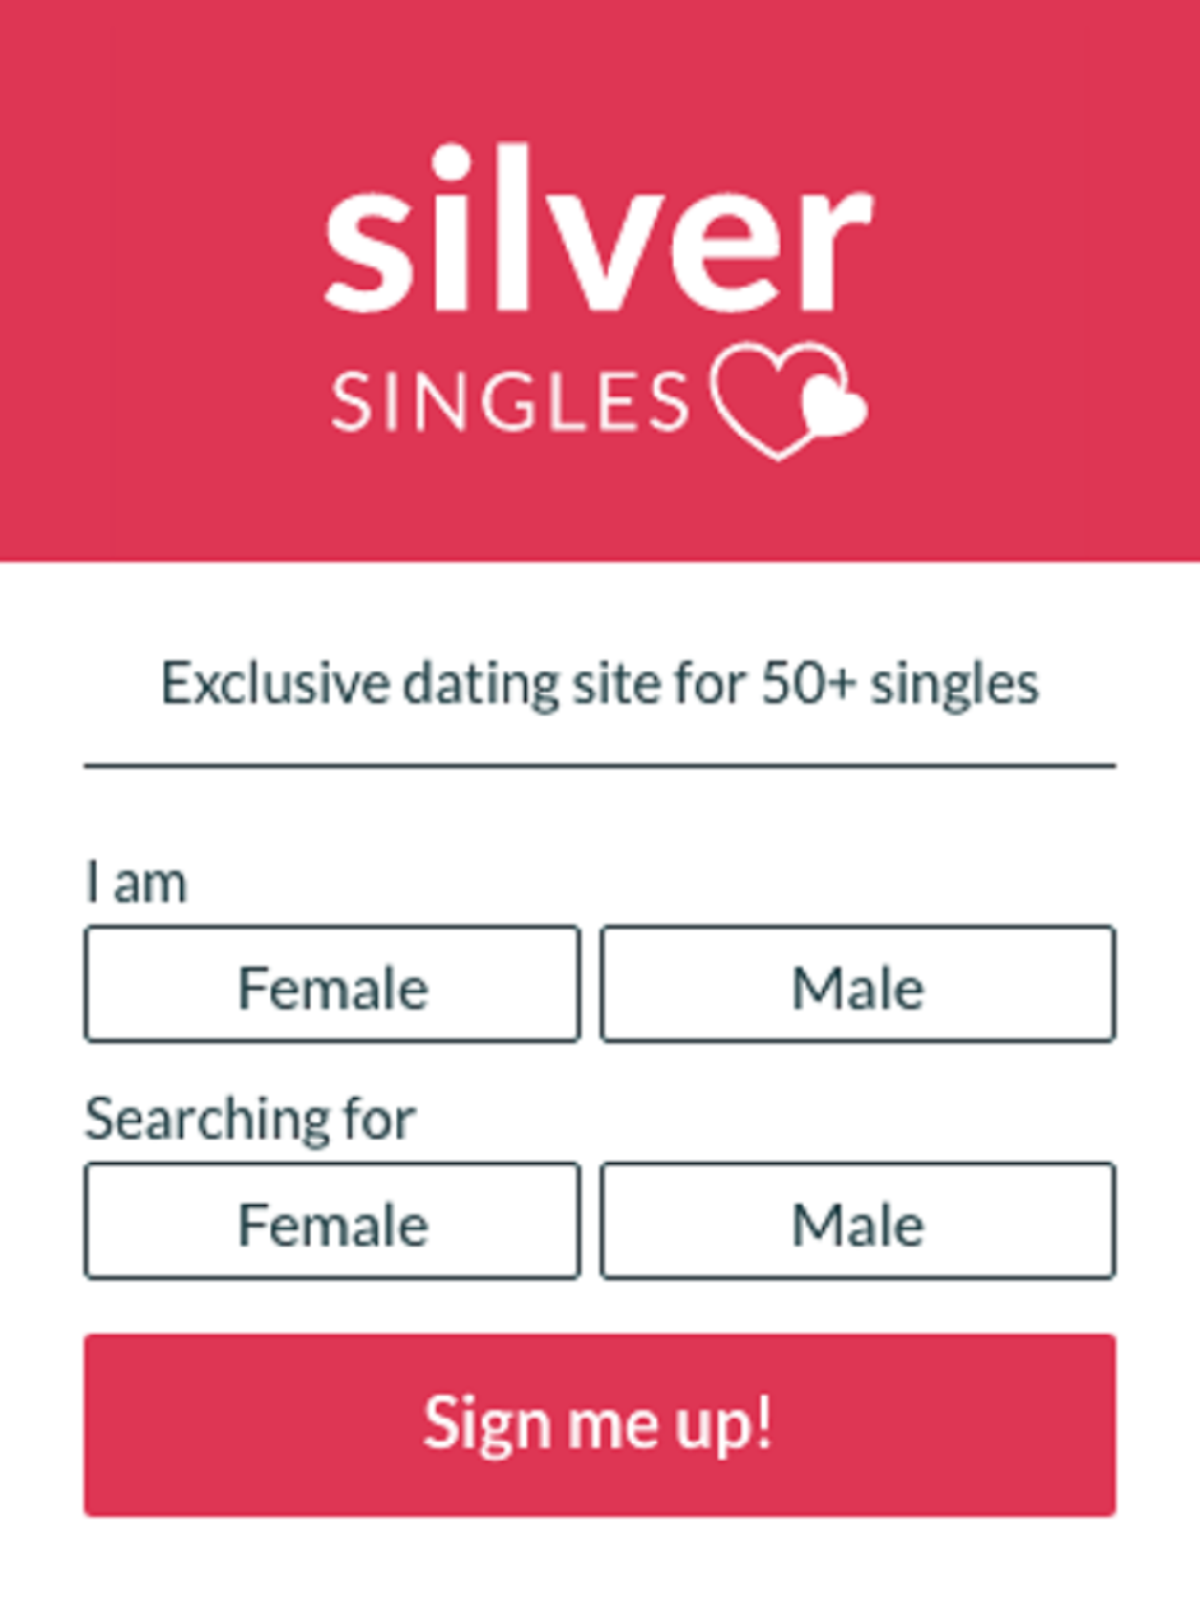 Descarca SilverSingles: The 50+ Dating App Android: Datare